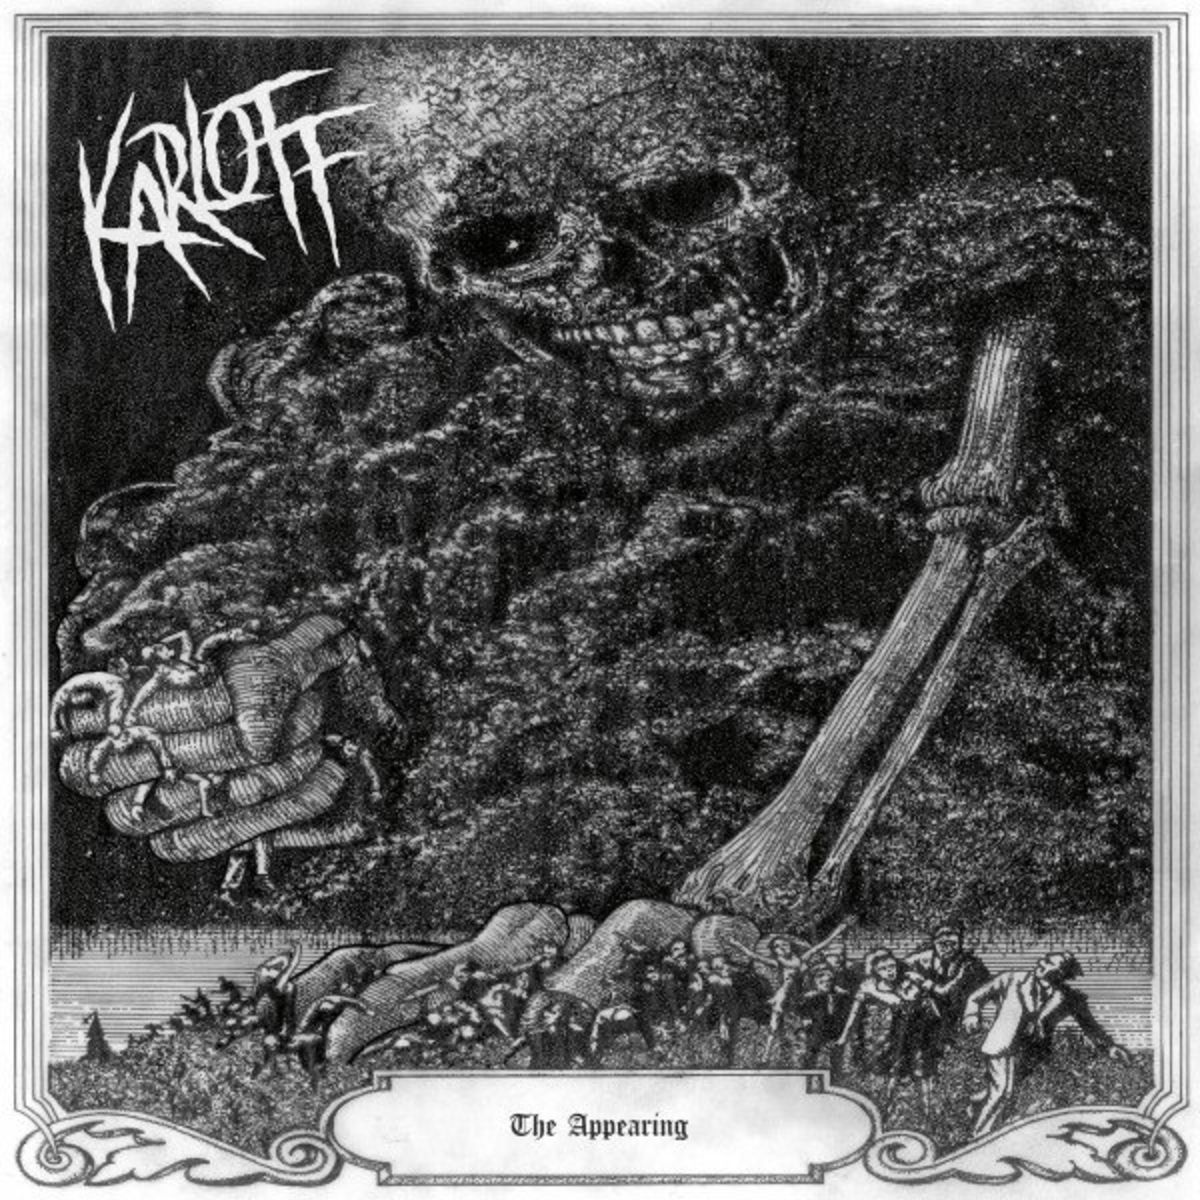 Karloff - The Appearing (2021)